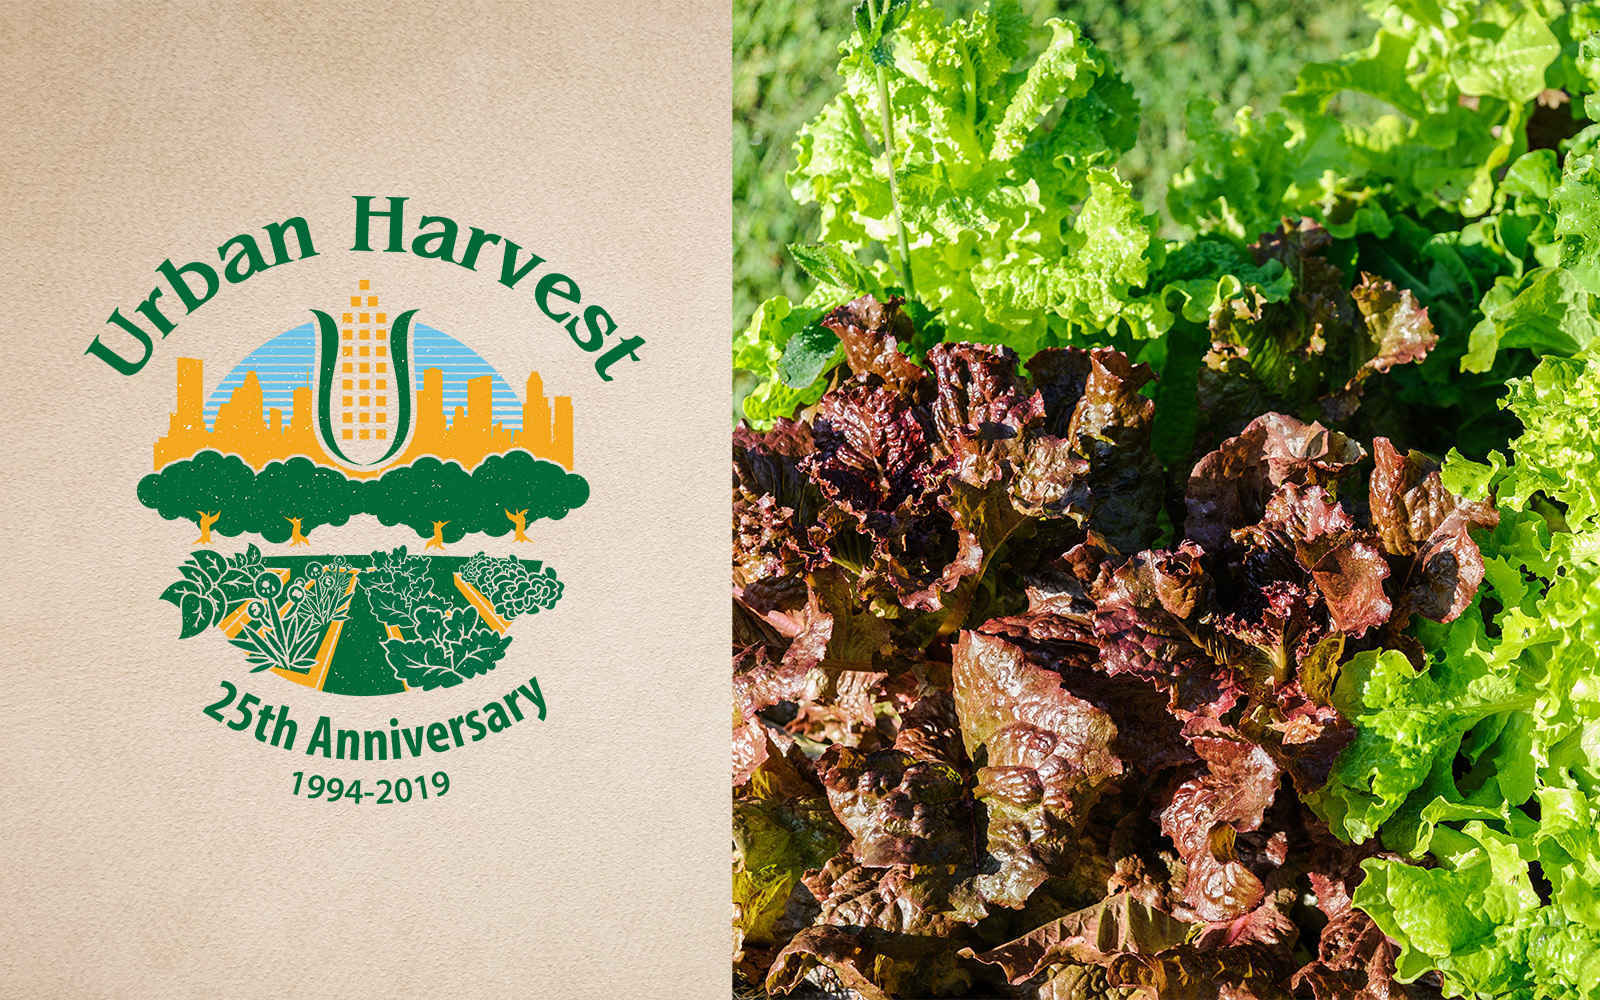 Urban Harvest is celebrating 25 years of enriching the lives, soils, and plates of Houstonians image